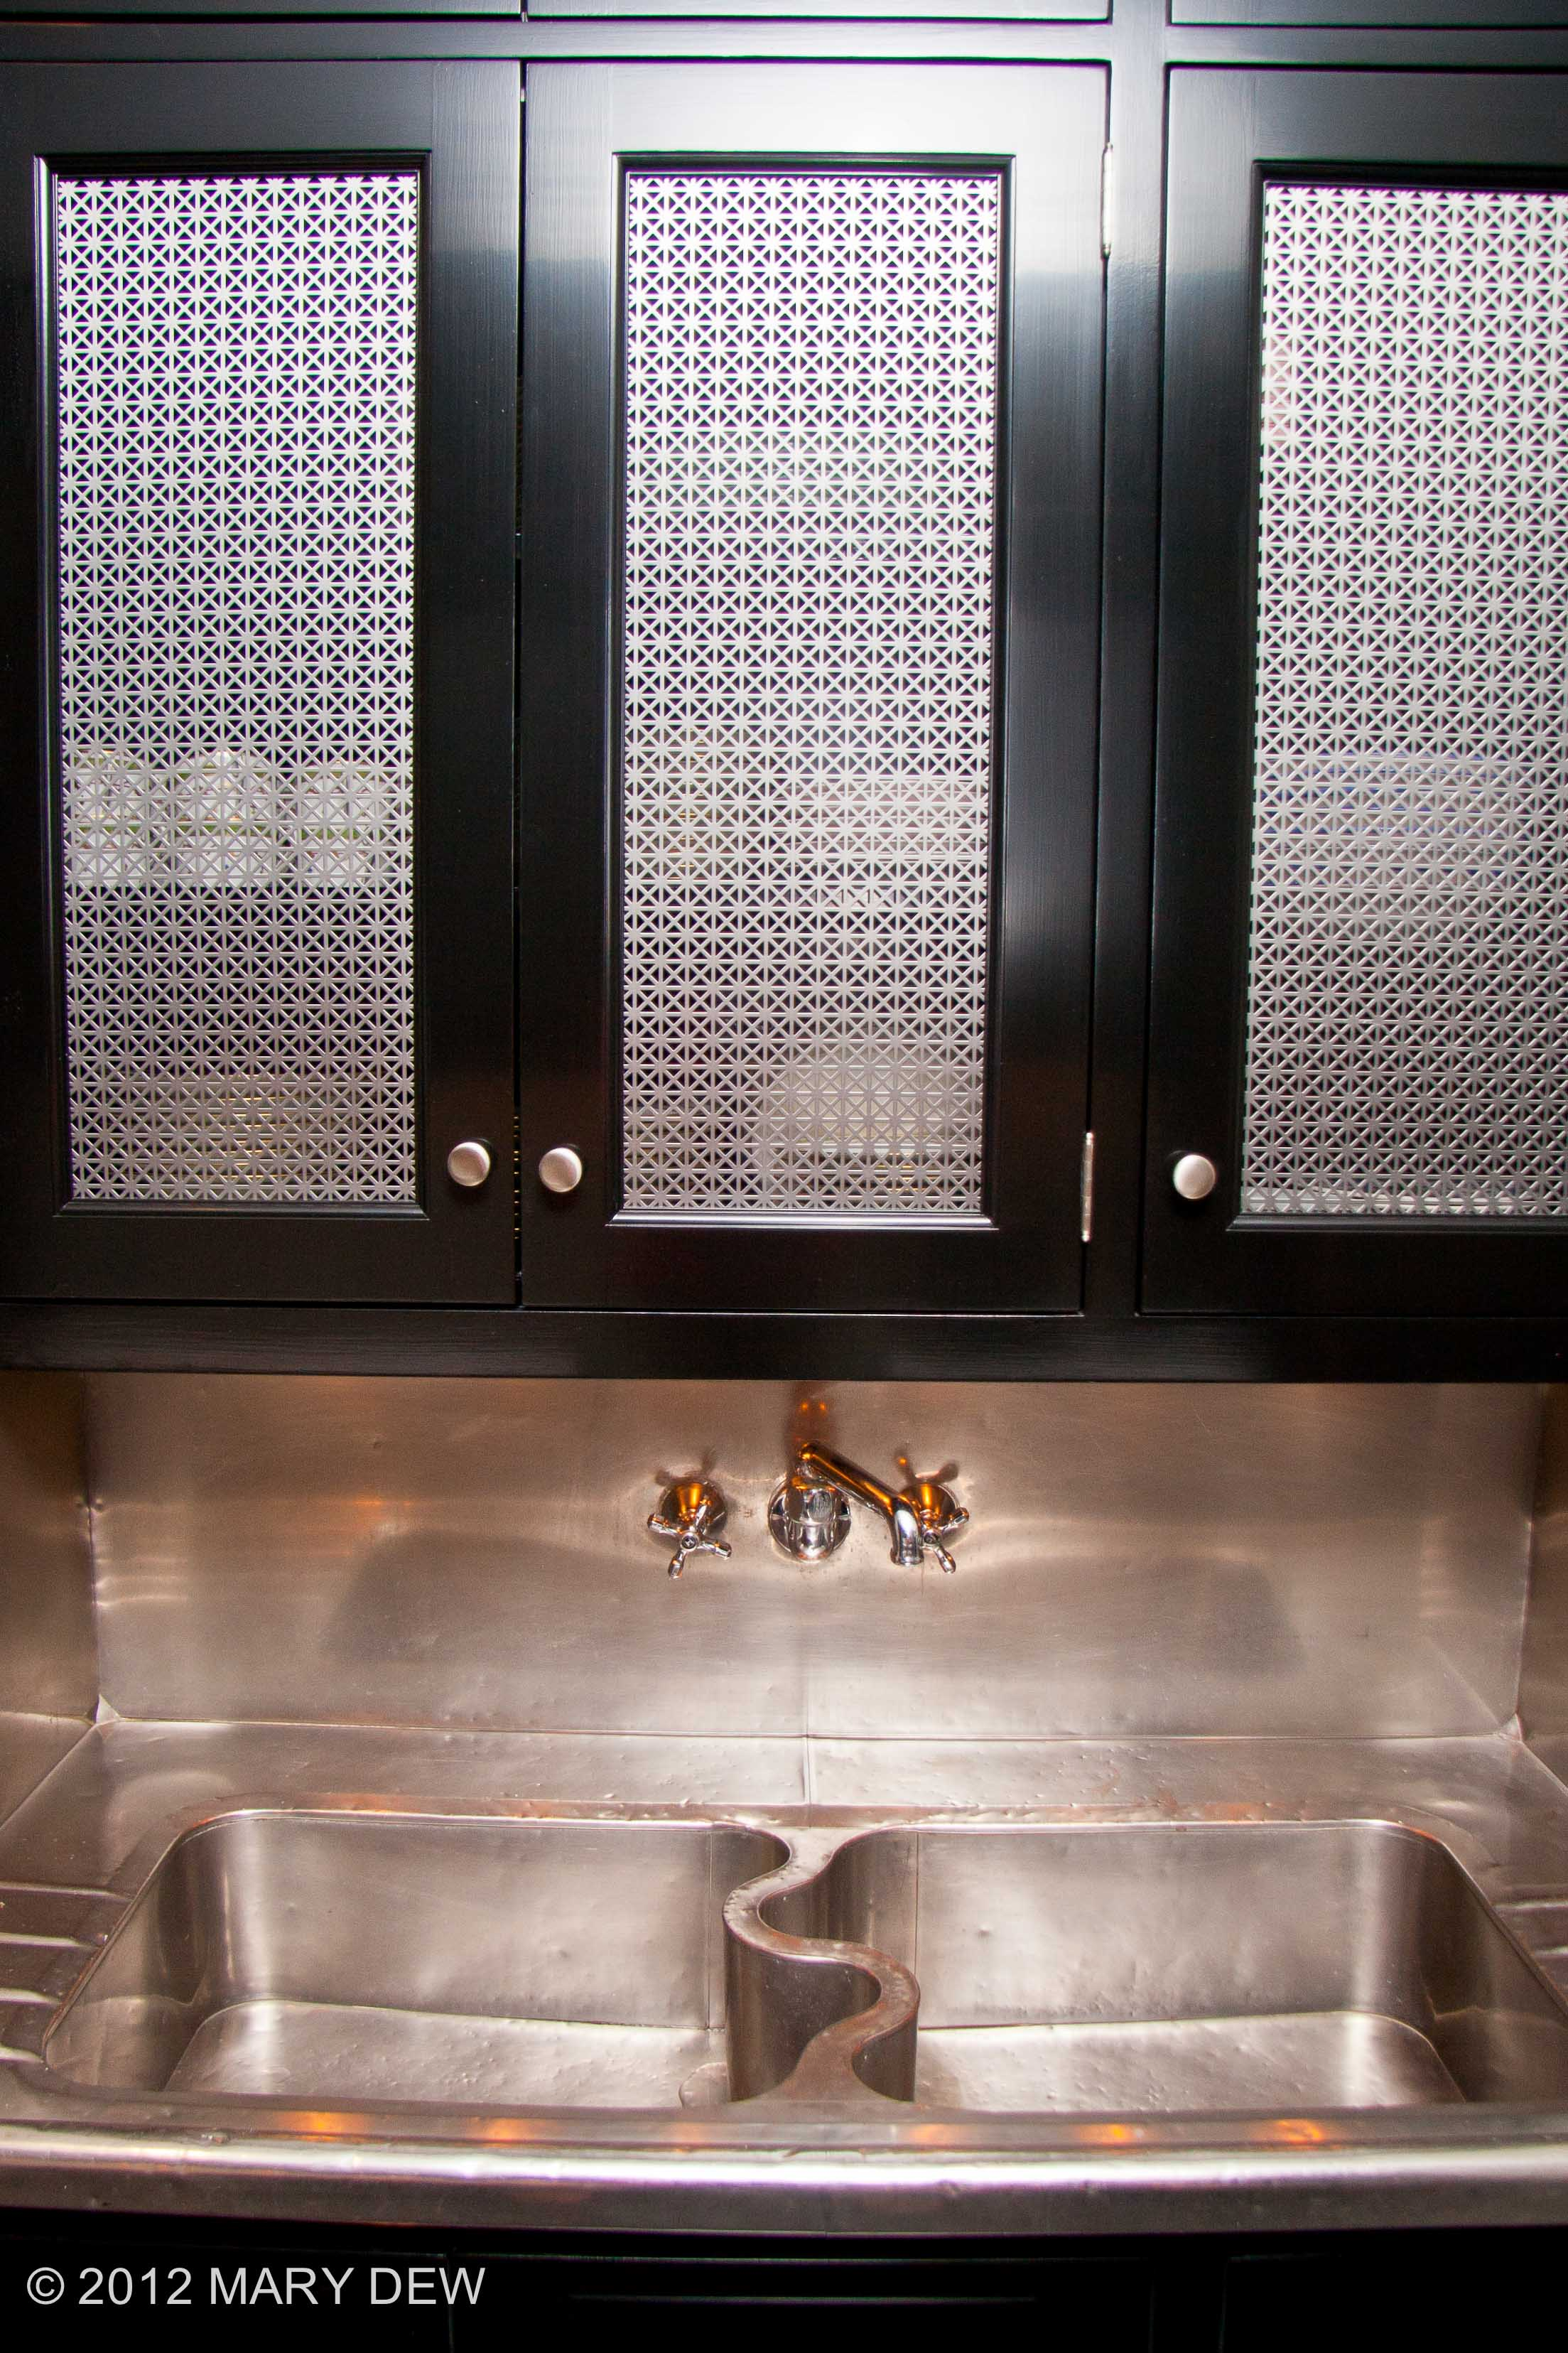 Antique Stainless Sink & Plated Grills